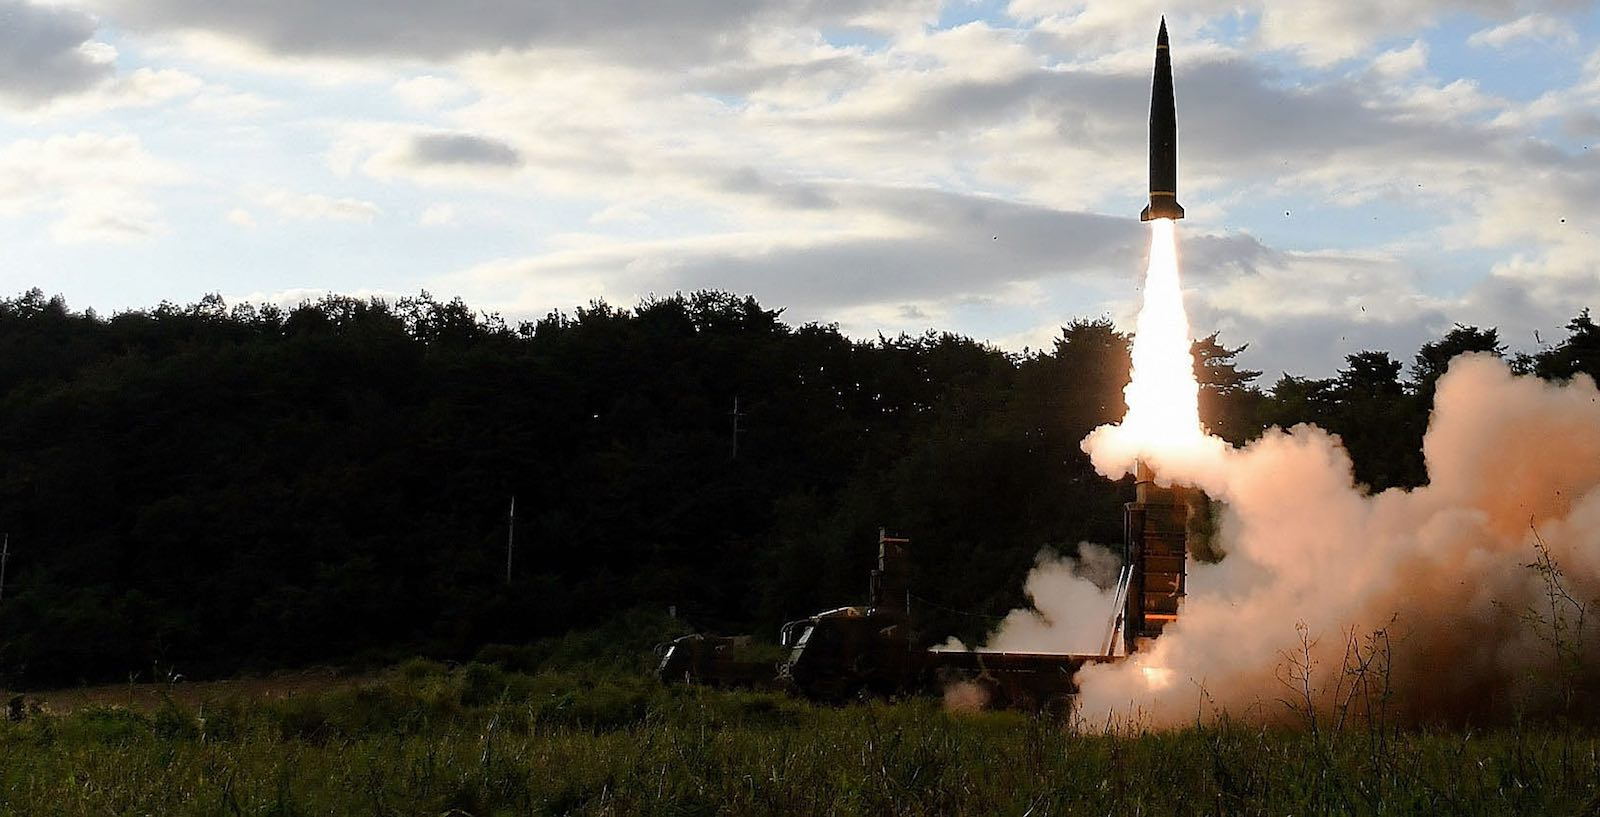 South Korea tests missiles in response to North Korean missile tests in September 2017 (Photo: South Korean Defense Ministry via Getty)